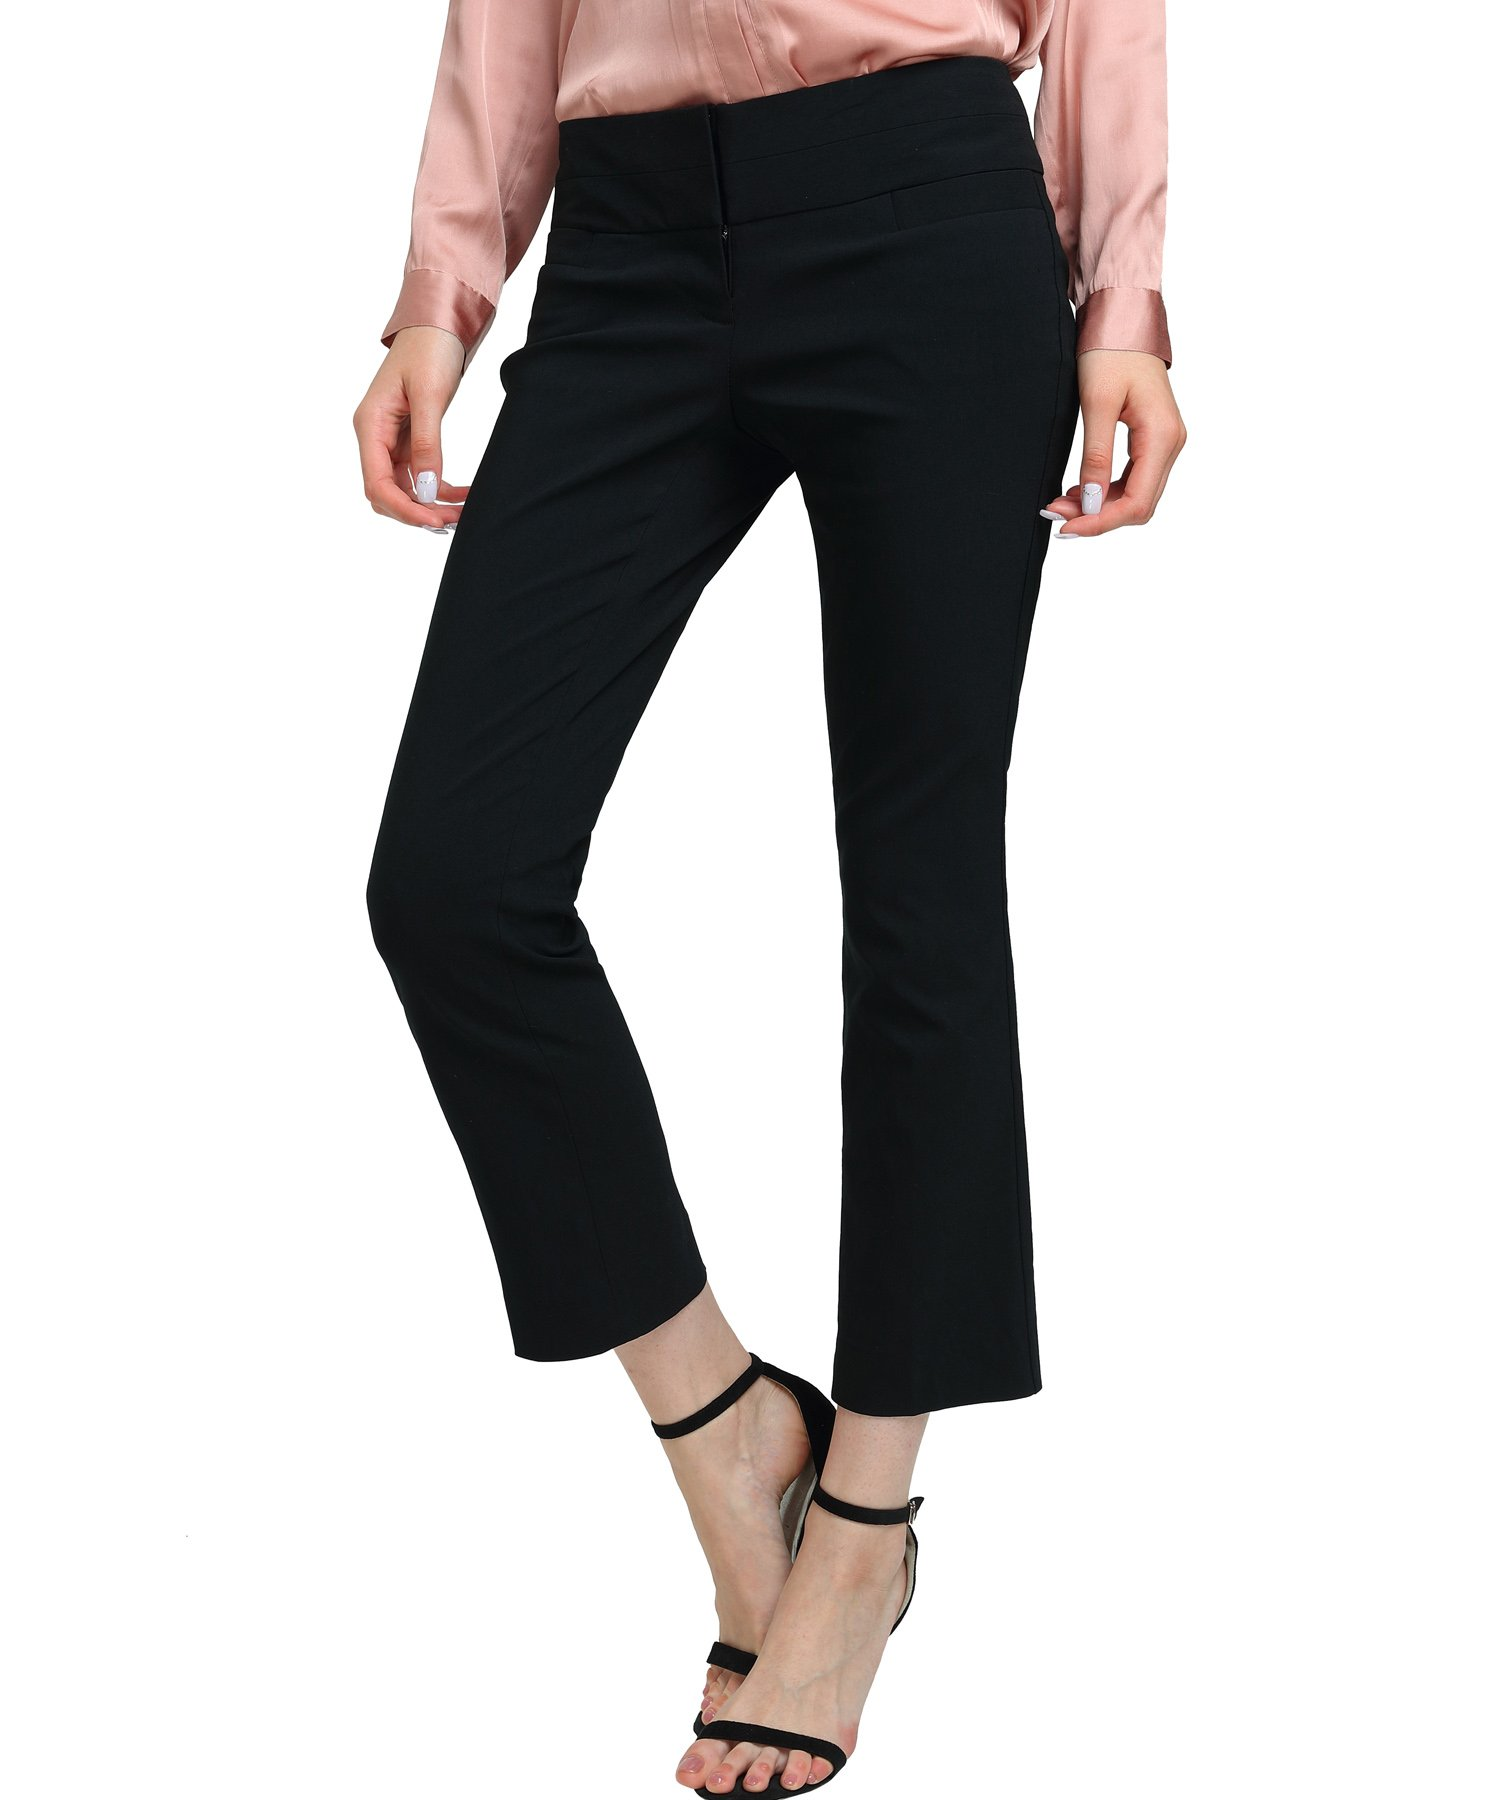 Women's Bootcut Stretch Dress Pants Fit Stretchy Trousers Basic Office Stretch Pants